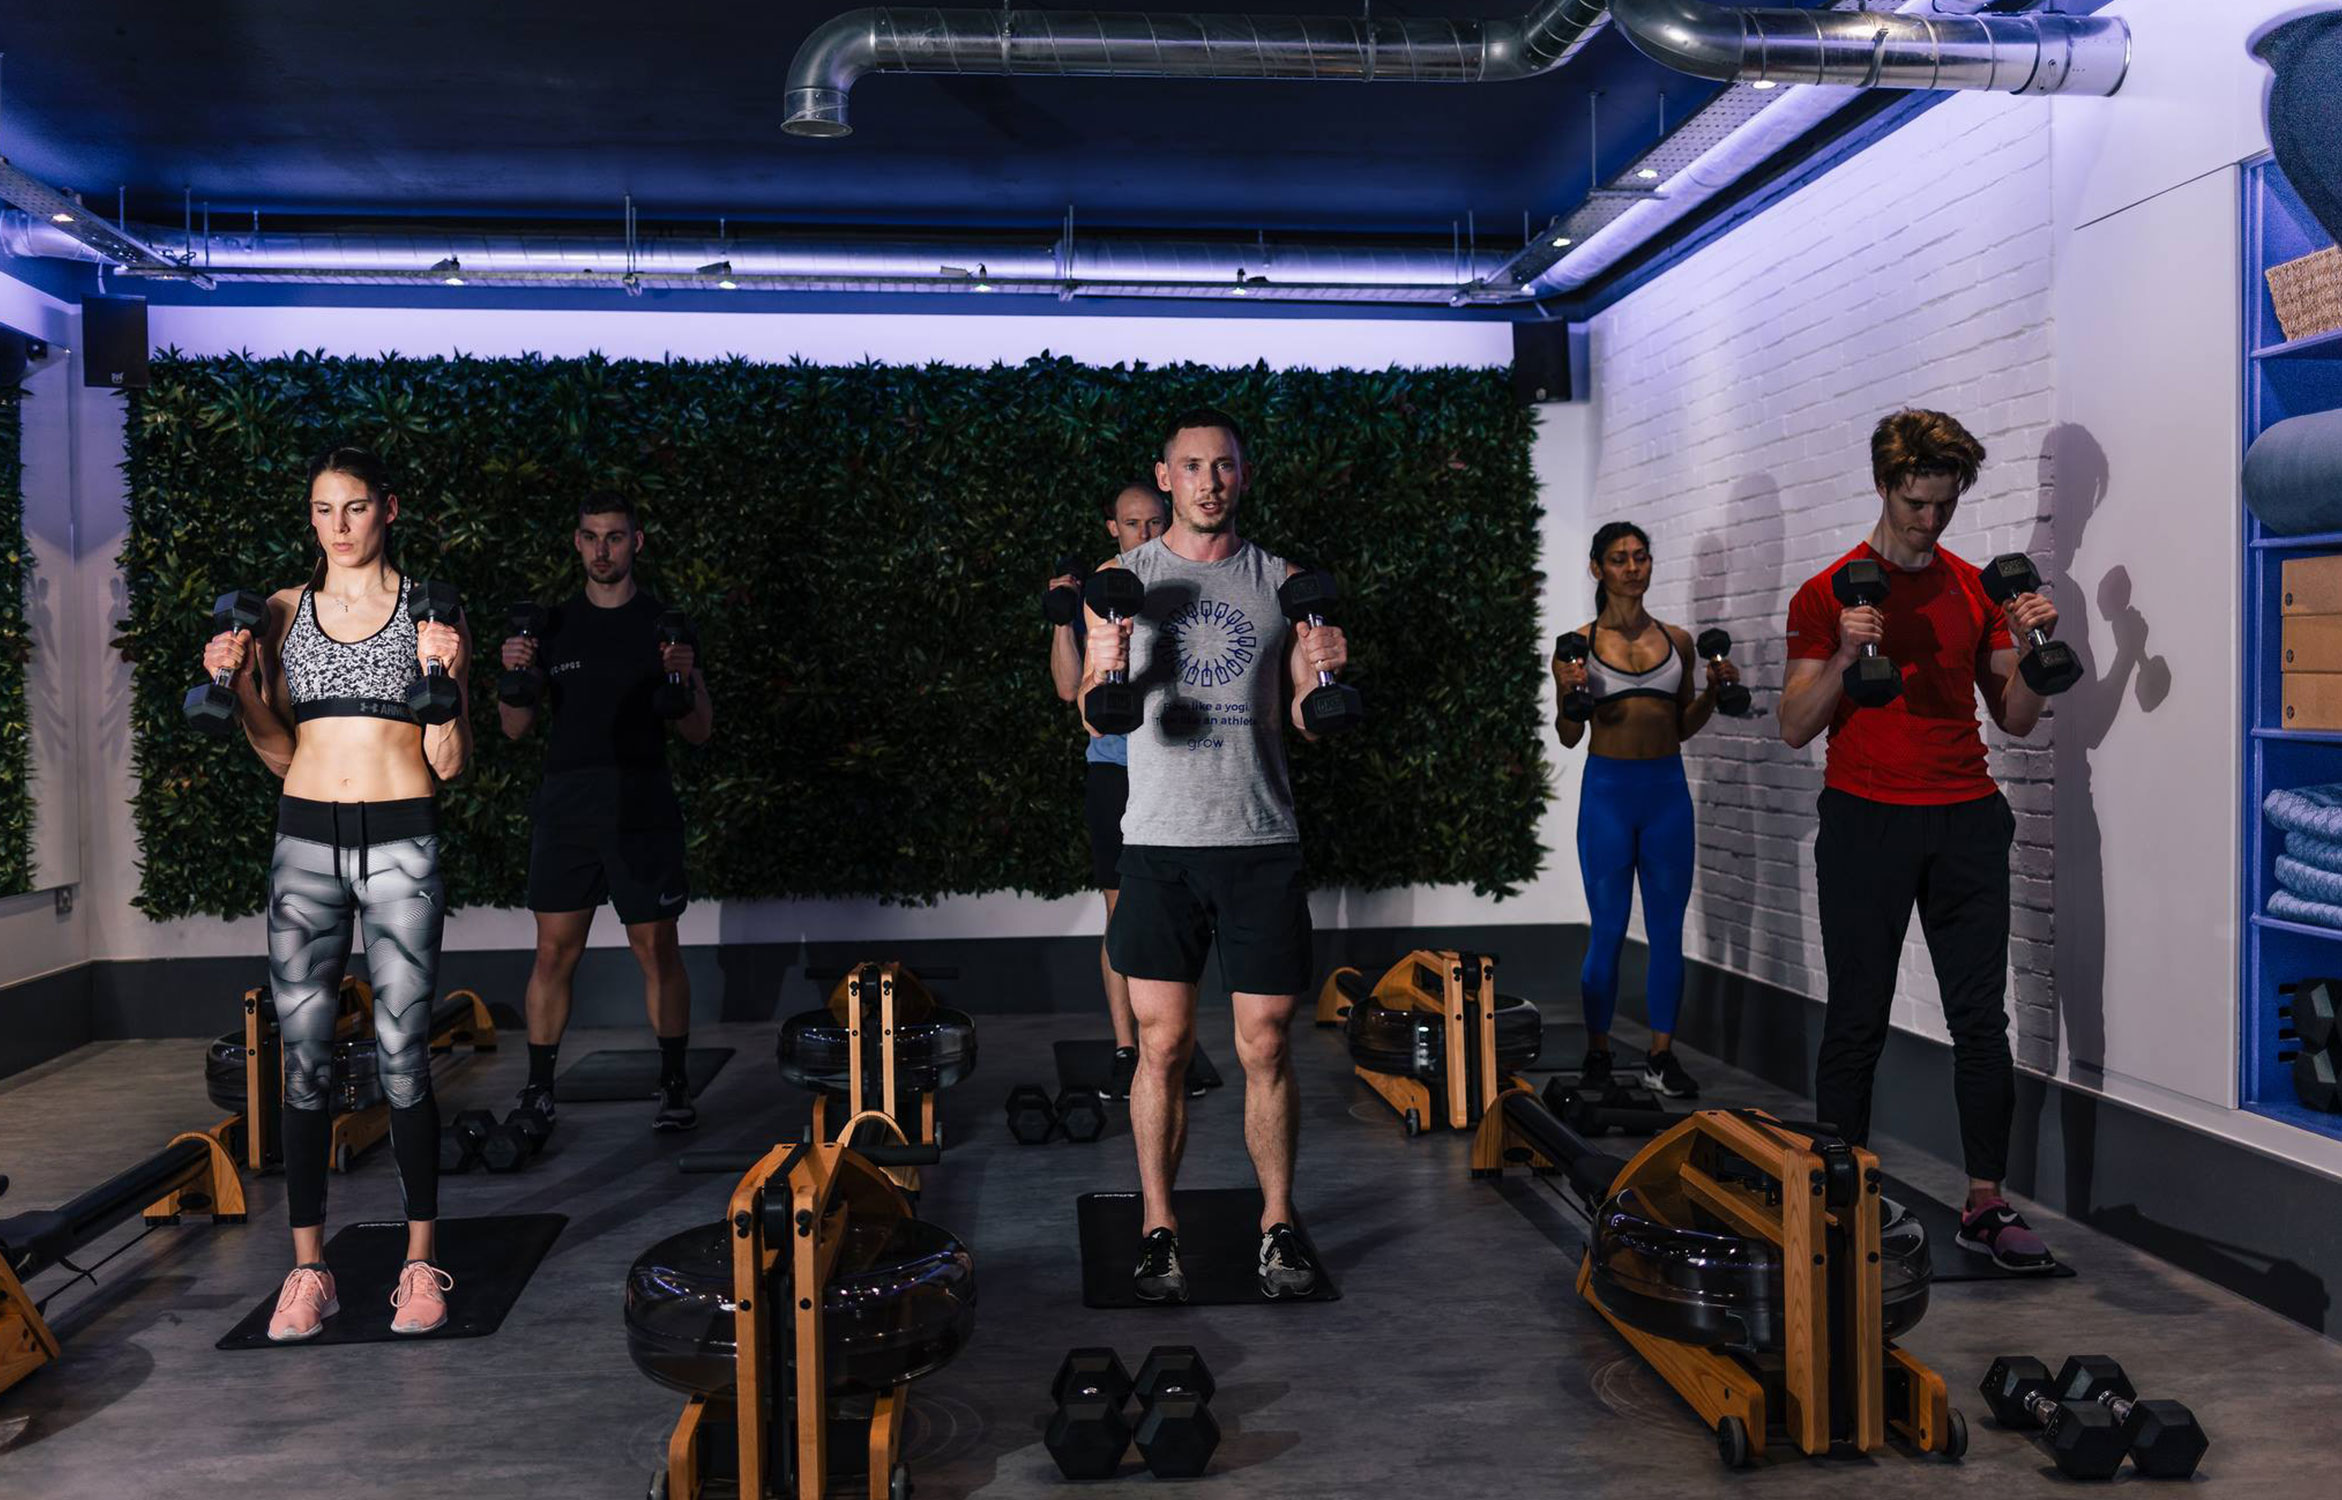 grow-gym-design-11